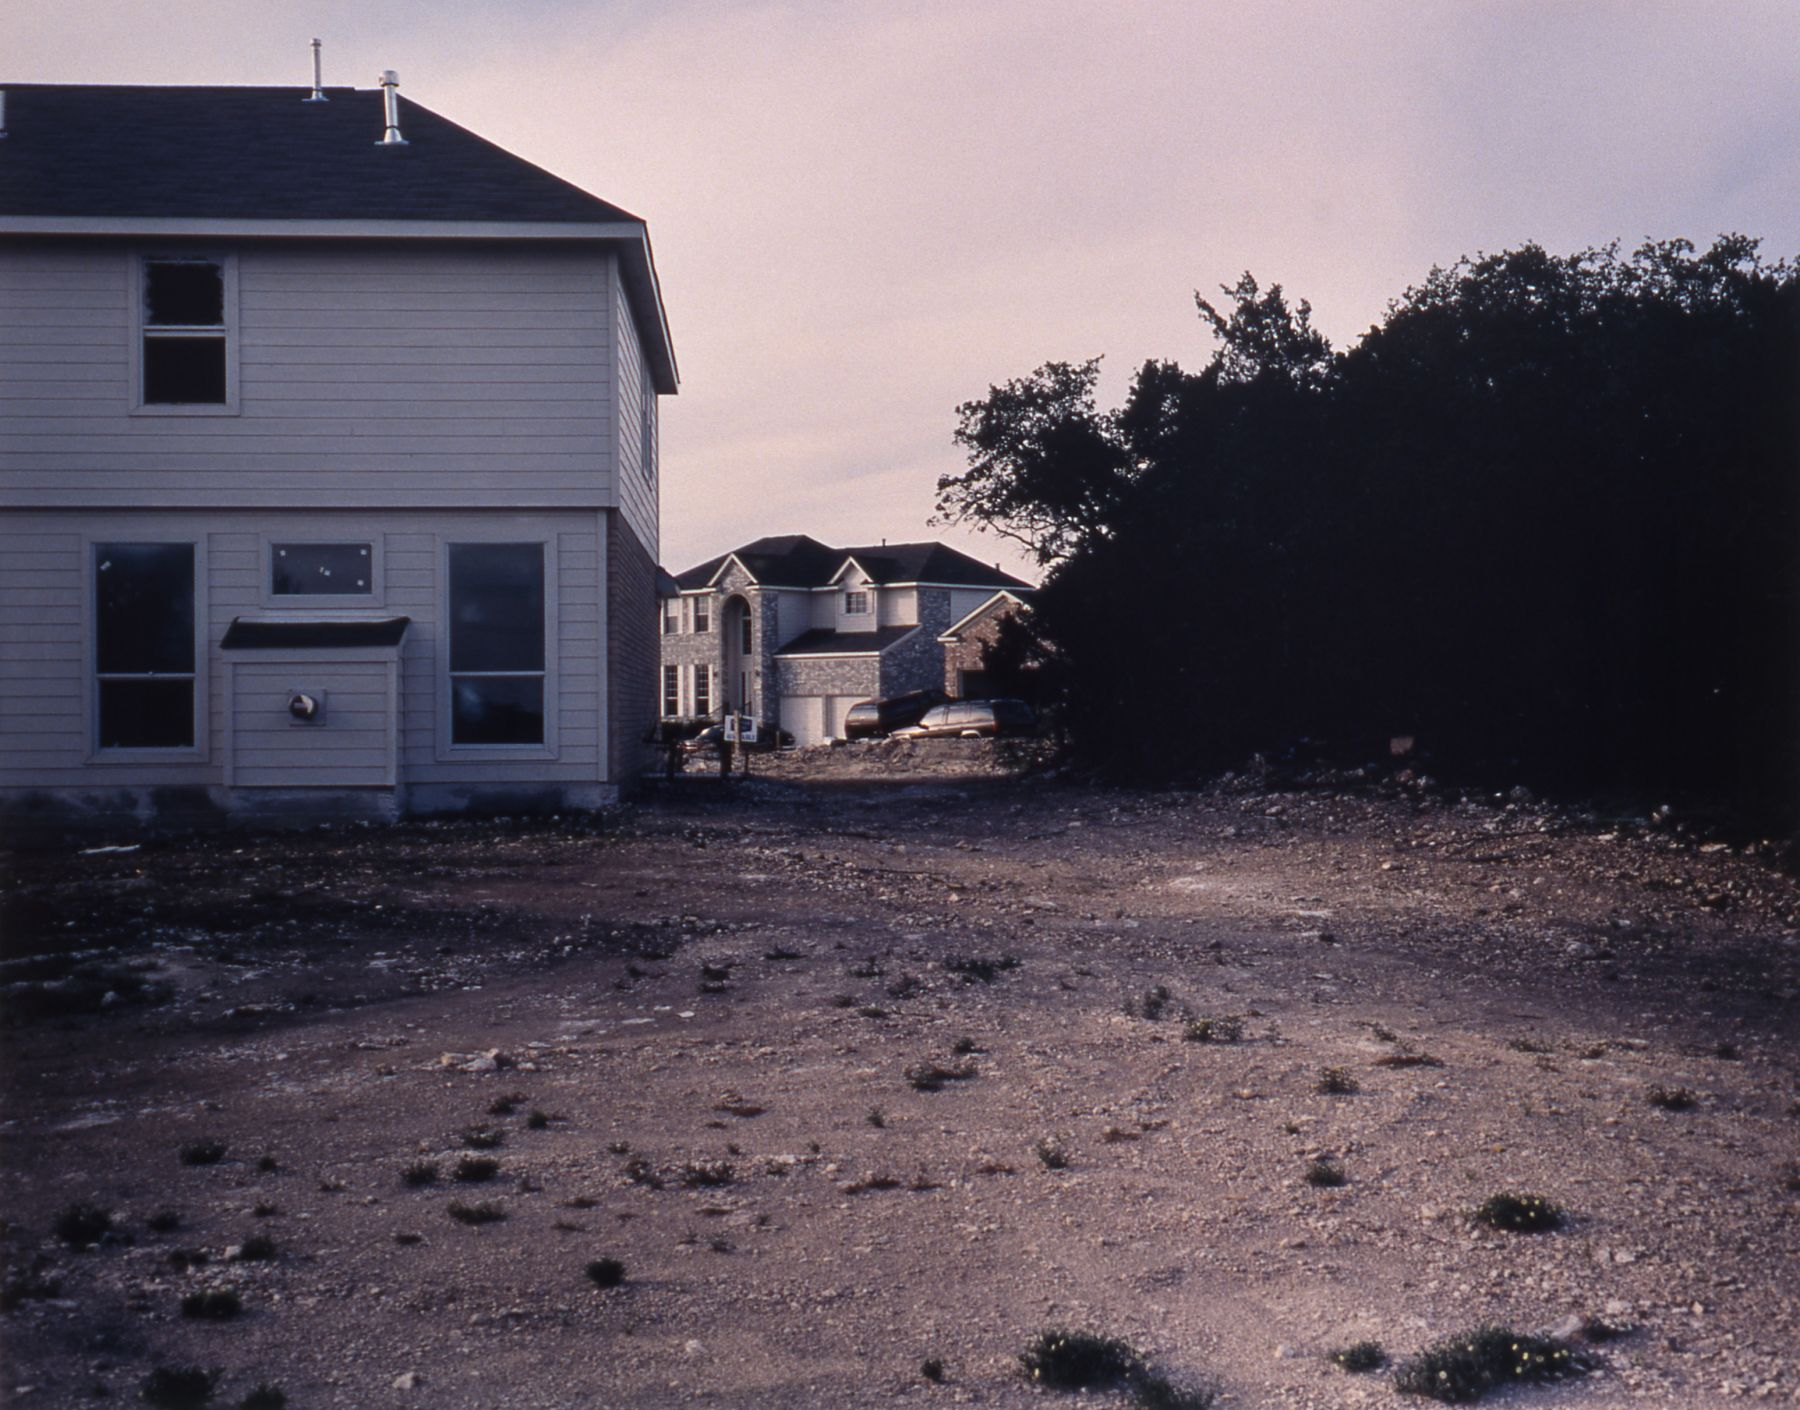 Norwood and Other Locations, 2000 (detail), c-print on MDF, 27 x 34 1/2 inches, edition of 5